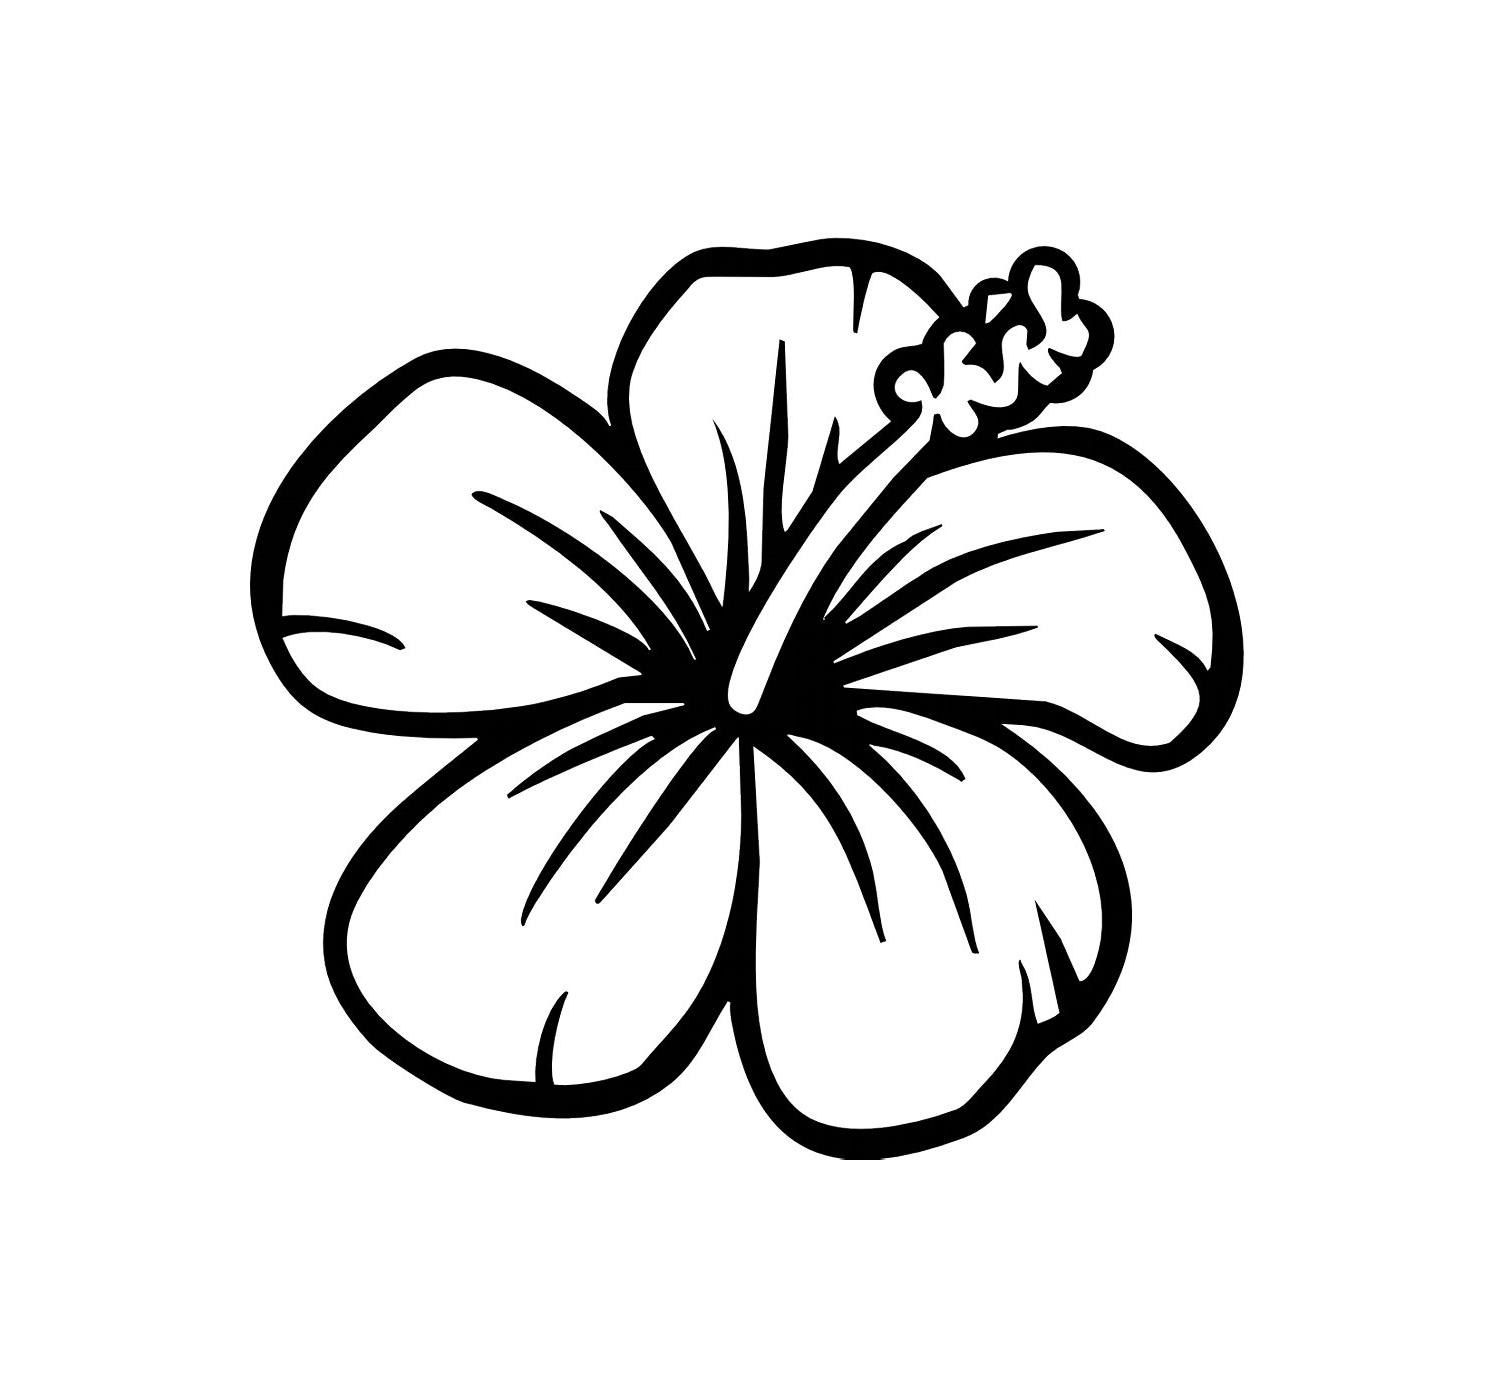 Hawaiian Flower Line Drawing : Easy leaf outline image nextinvitation templates art